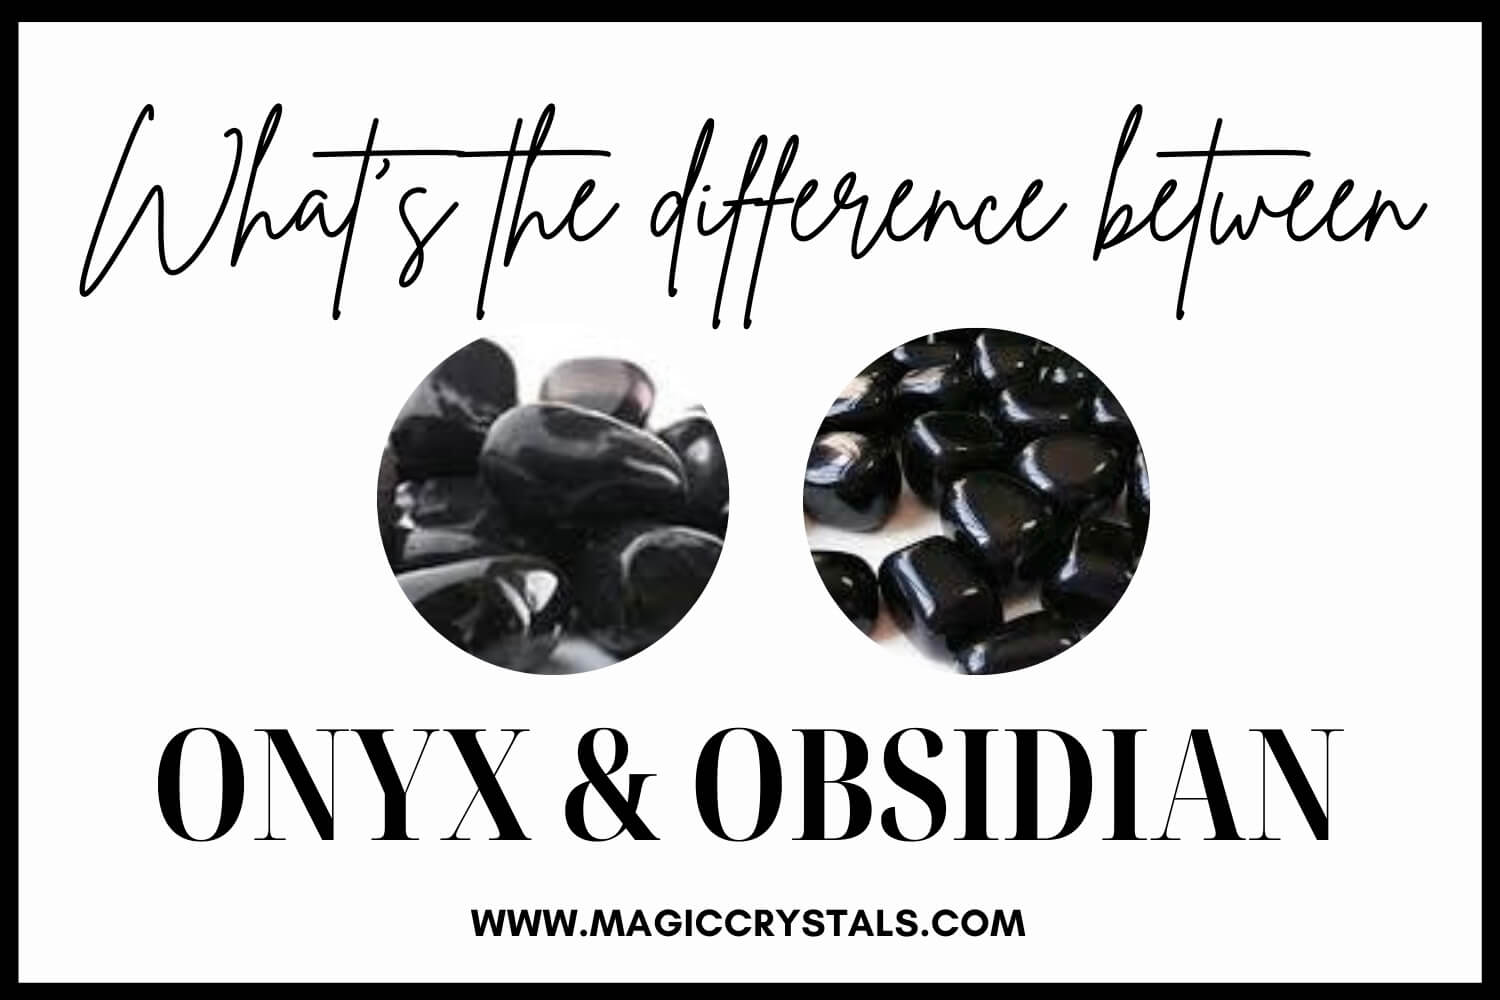 What is obsidian? What is onyx? - Magic Crystals